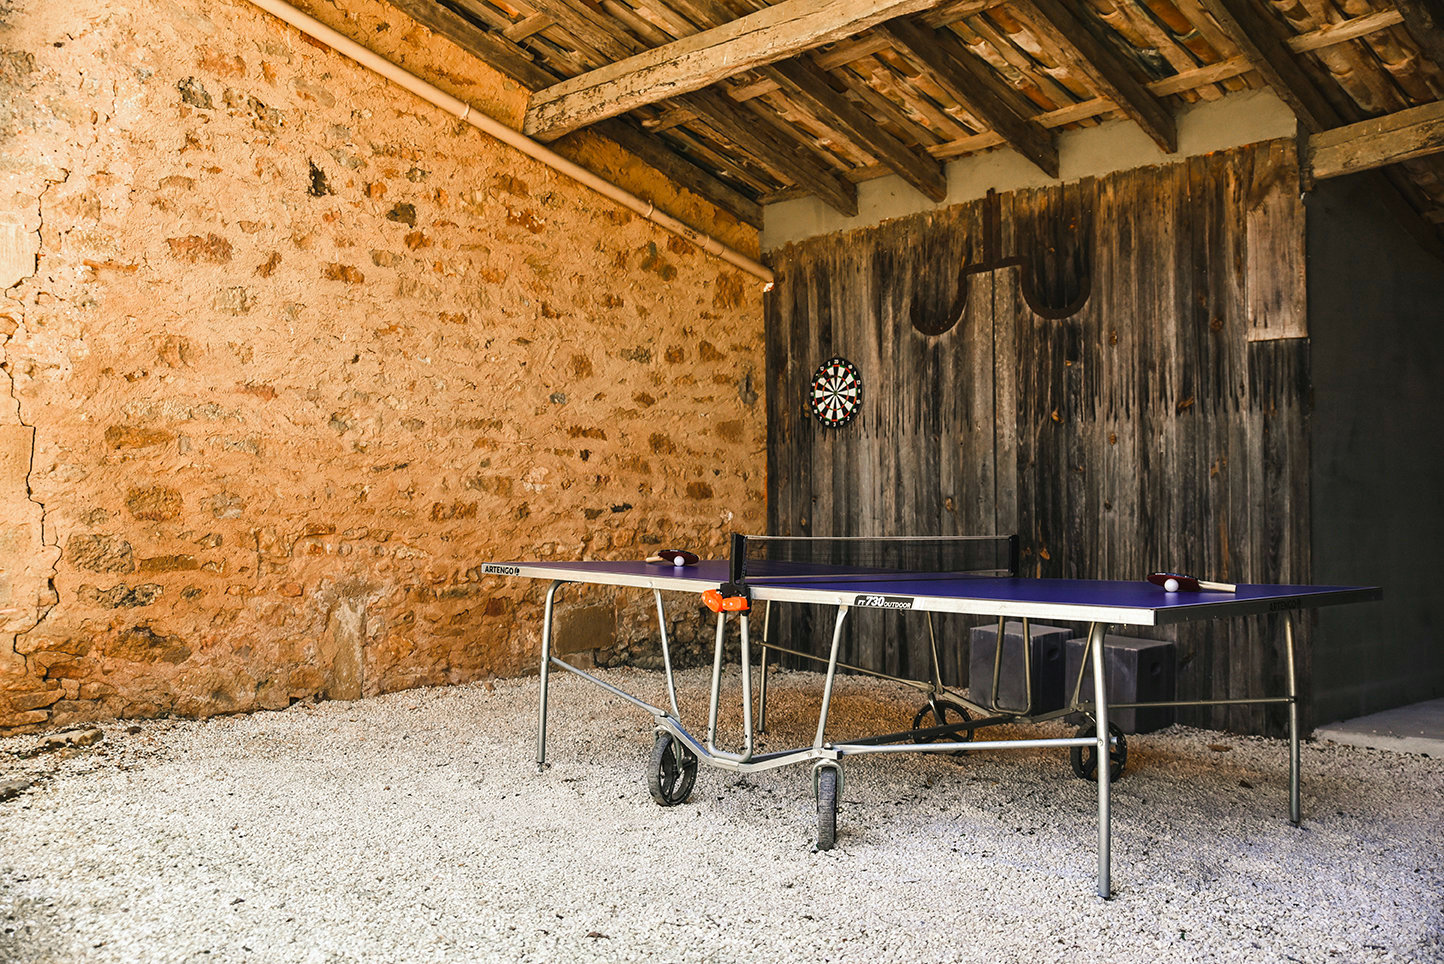 Luxury holiday house in the Dordogne, France, with a table tennis table in a stone and roofed open structure on white gravel